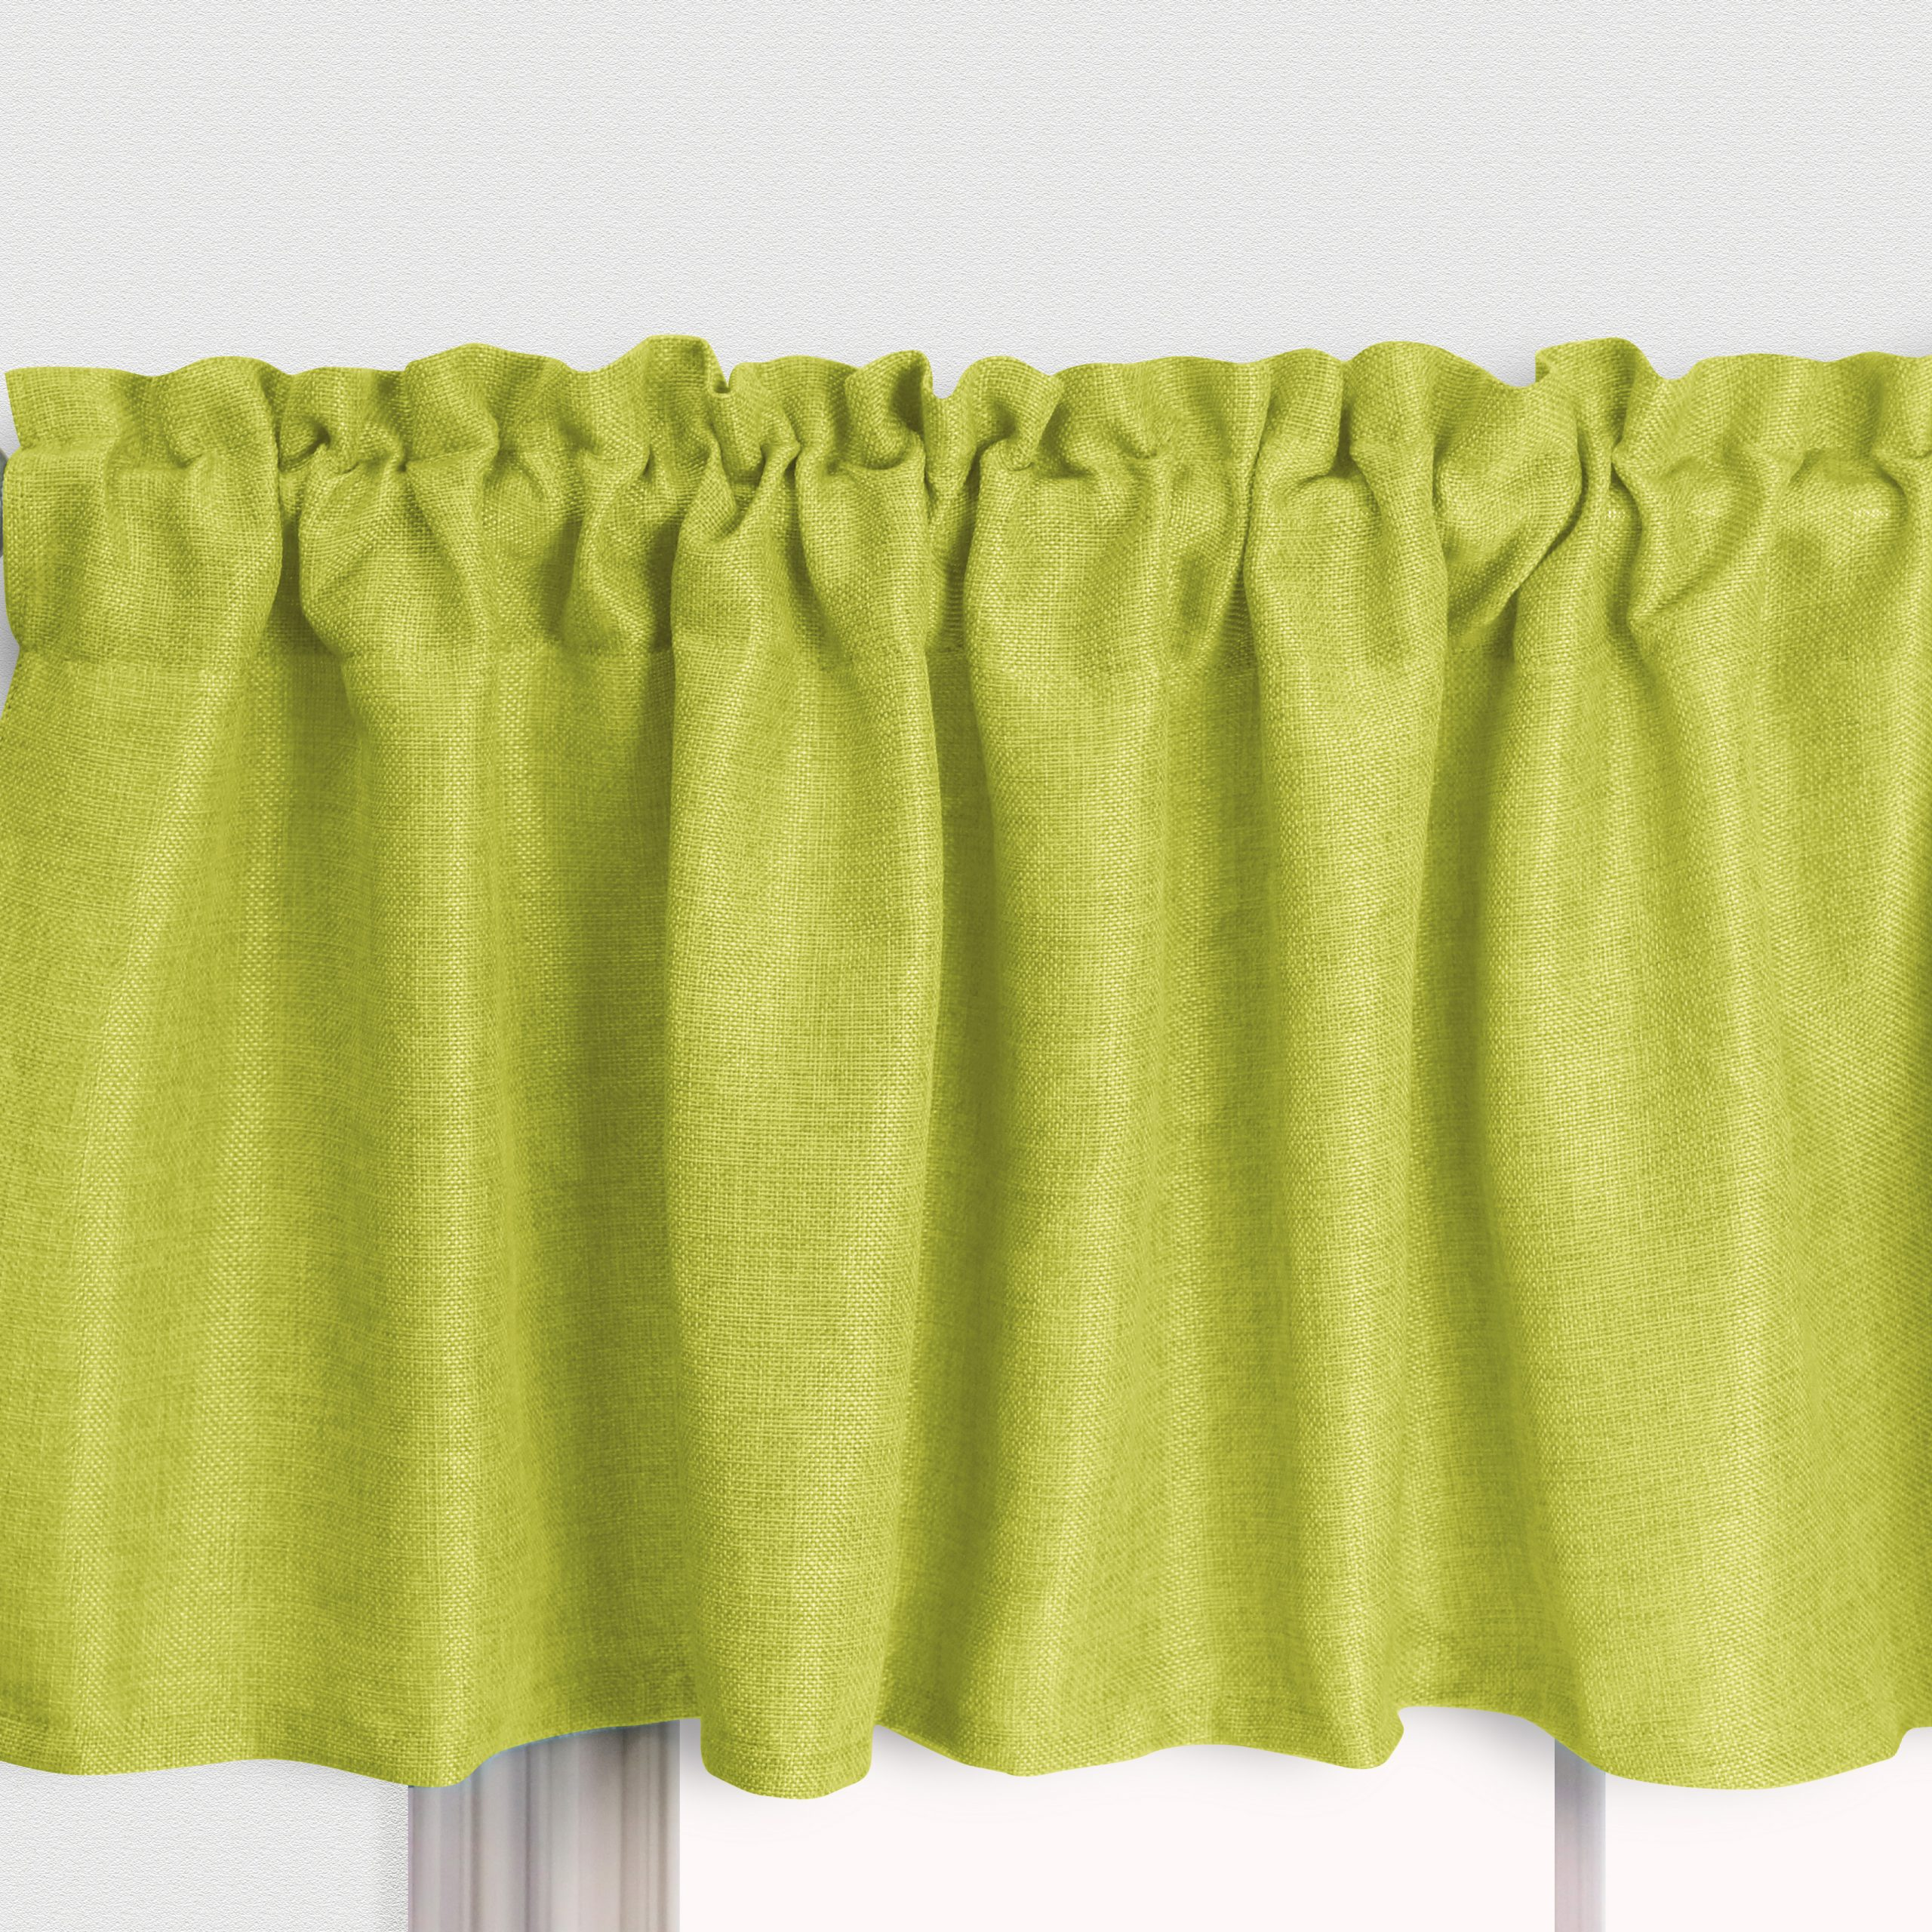 [%Aiking Home Pure 100% Faux Linen Window Valance – Size 56 Pertaining To Trendy Hudson Pintuck Window Curtain Valances|Hudson Pintuck Window Curtain Valances Pertaining To Most Recently Released Aiking Home Pure 100% Faux Linen Window Valance – Size 56|Current Hudson Pintuck Window Curtain Valances Pertaining To Aiking Home Pure 100% Faux Linen Window Valance – Size 56|Current Aiking Home Pure 100% Faux Linen Window Valance – Size 56 With Regard To Hudson Pintuck Window Curtain Valances%] (View 16 of 20)